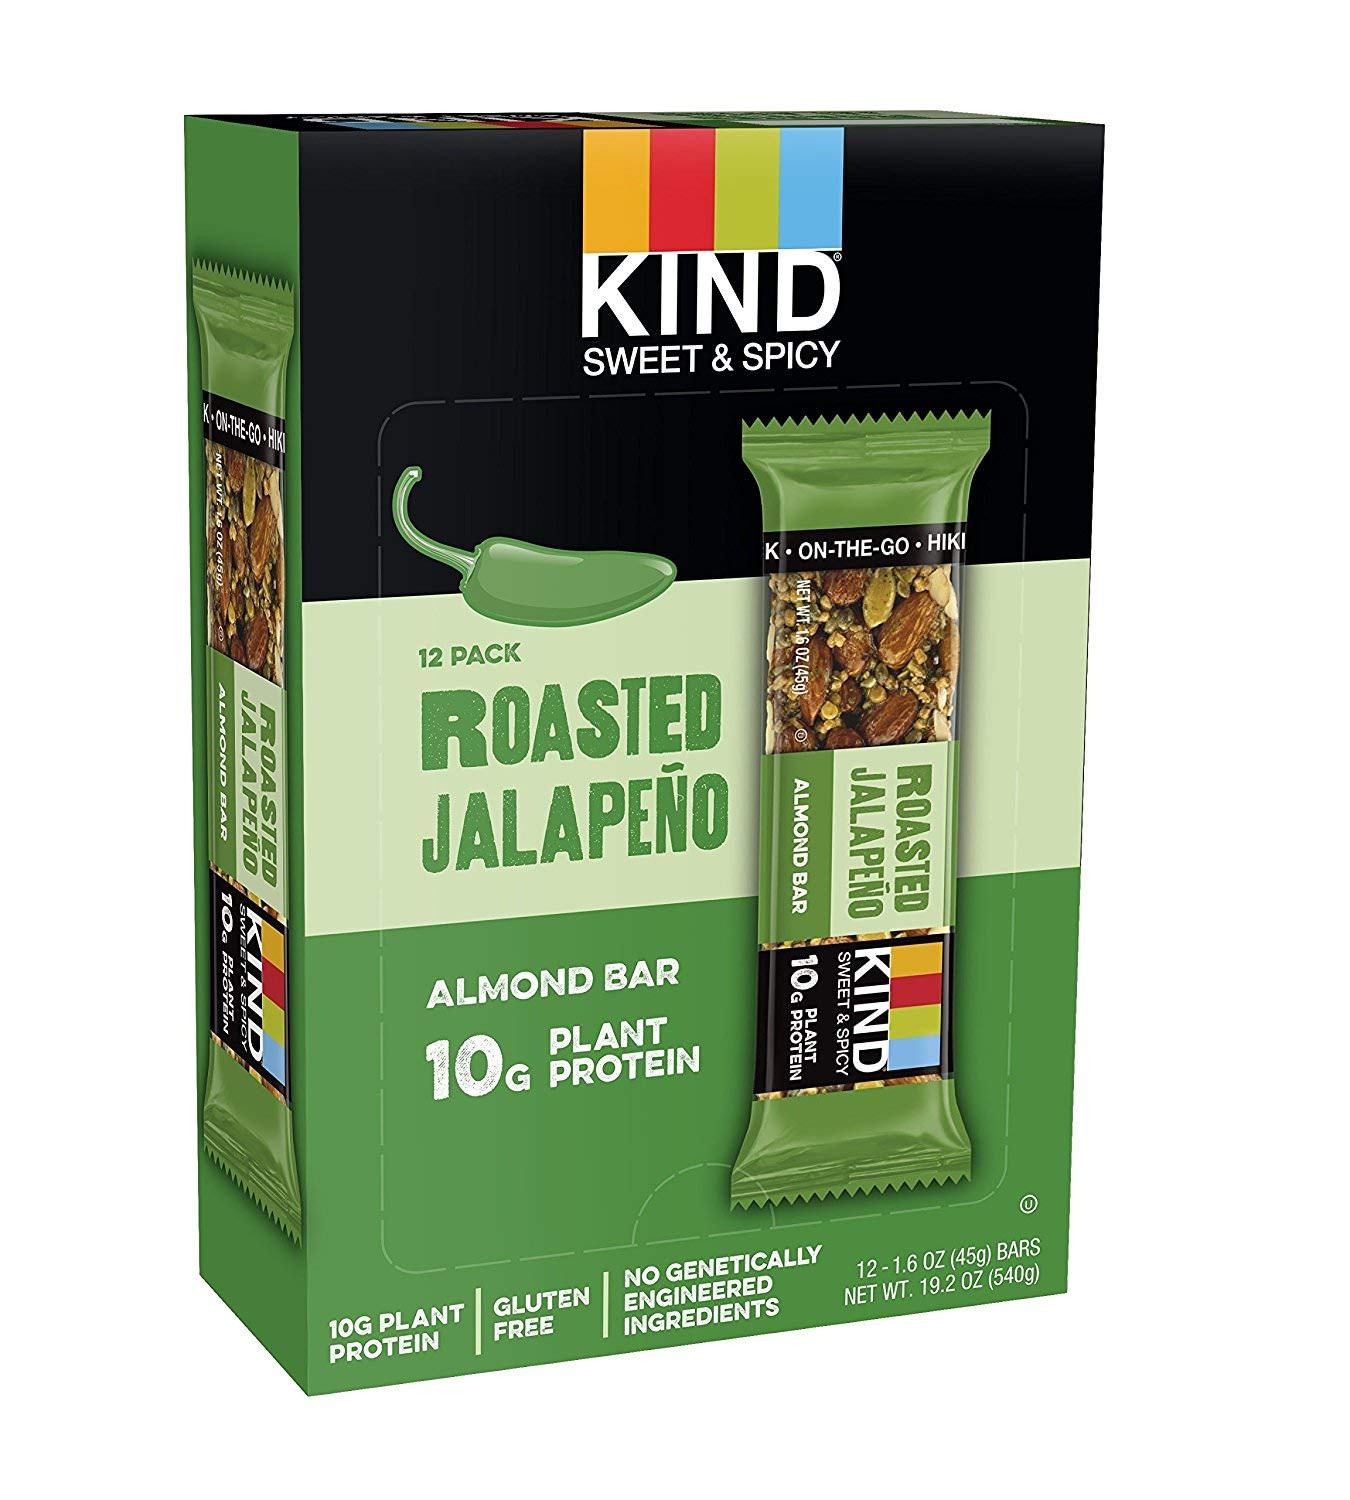 KIND Sweet and Spicy Bars, Roasted Jalapeno, Gluten Free, 10g Plant Protein, (24 Bars) by KIND (Image #1)